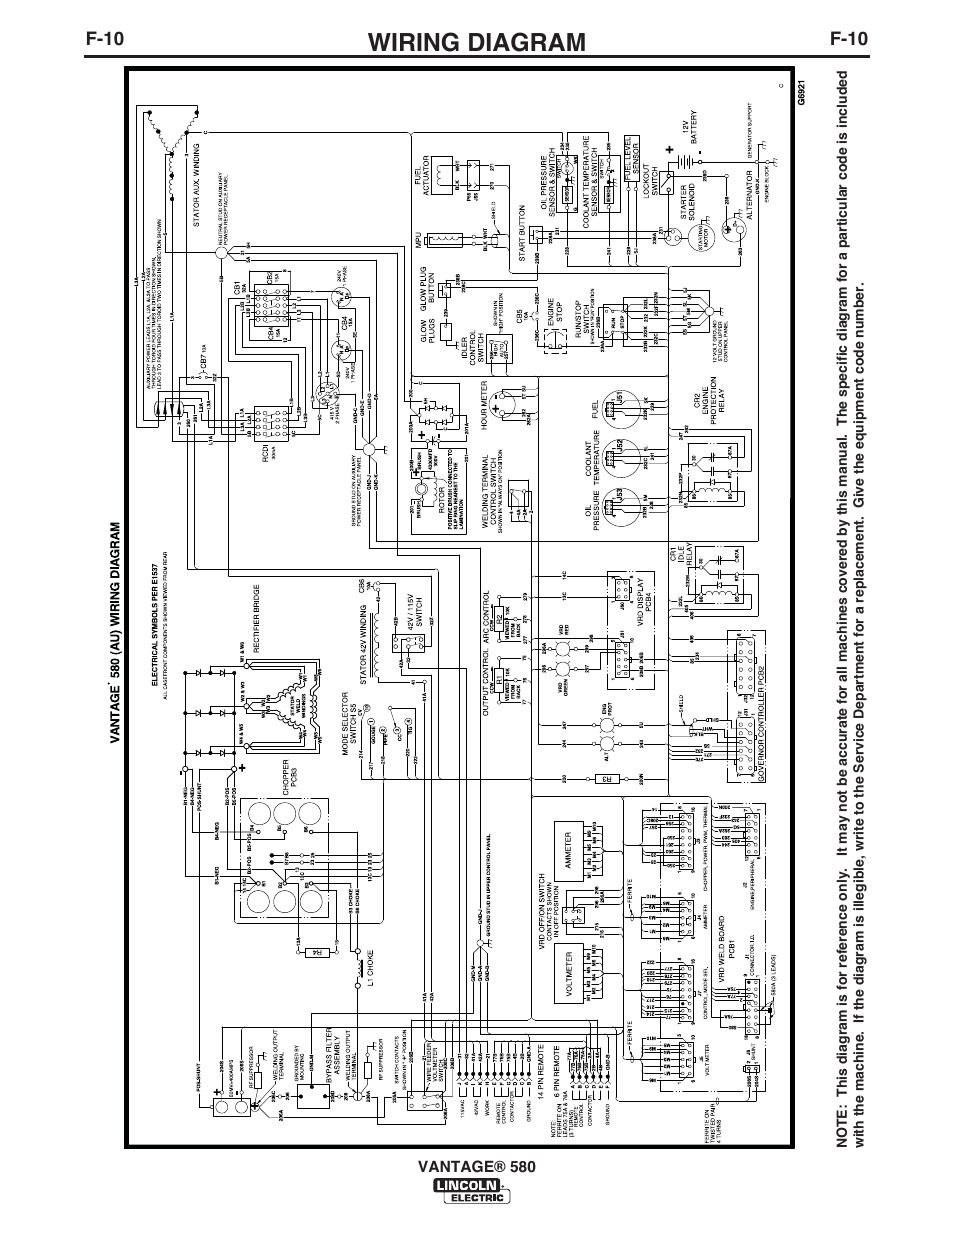 Lincoln Vantage 400 Wiring Diagram Igbt Inverter Welder Schematic Free Download Diagrams Clickwiring Electric Im10064 580 User Manual Basic Light